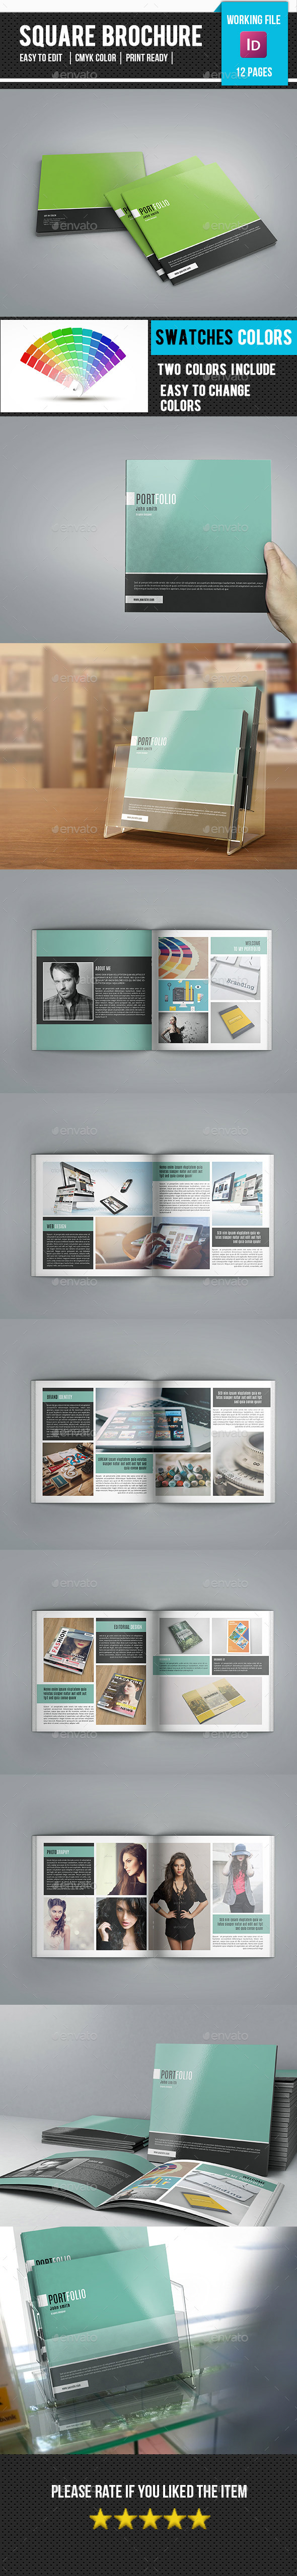 Square Bifold Brochure for Portfolio-v67 - Corporate Brochures